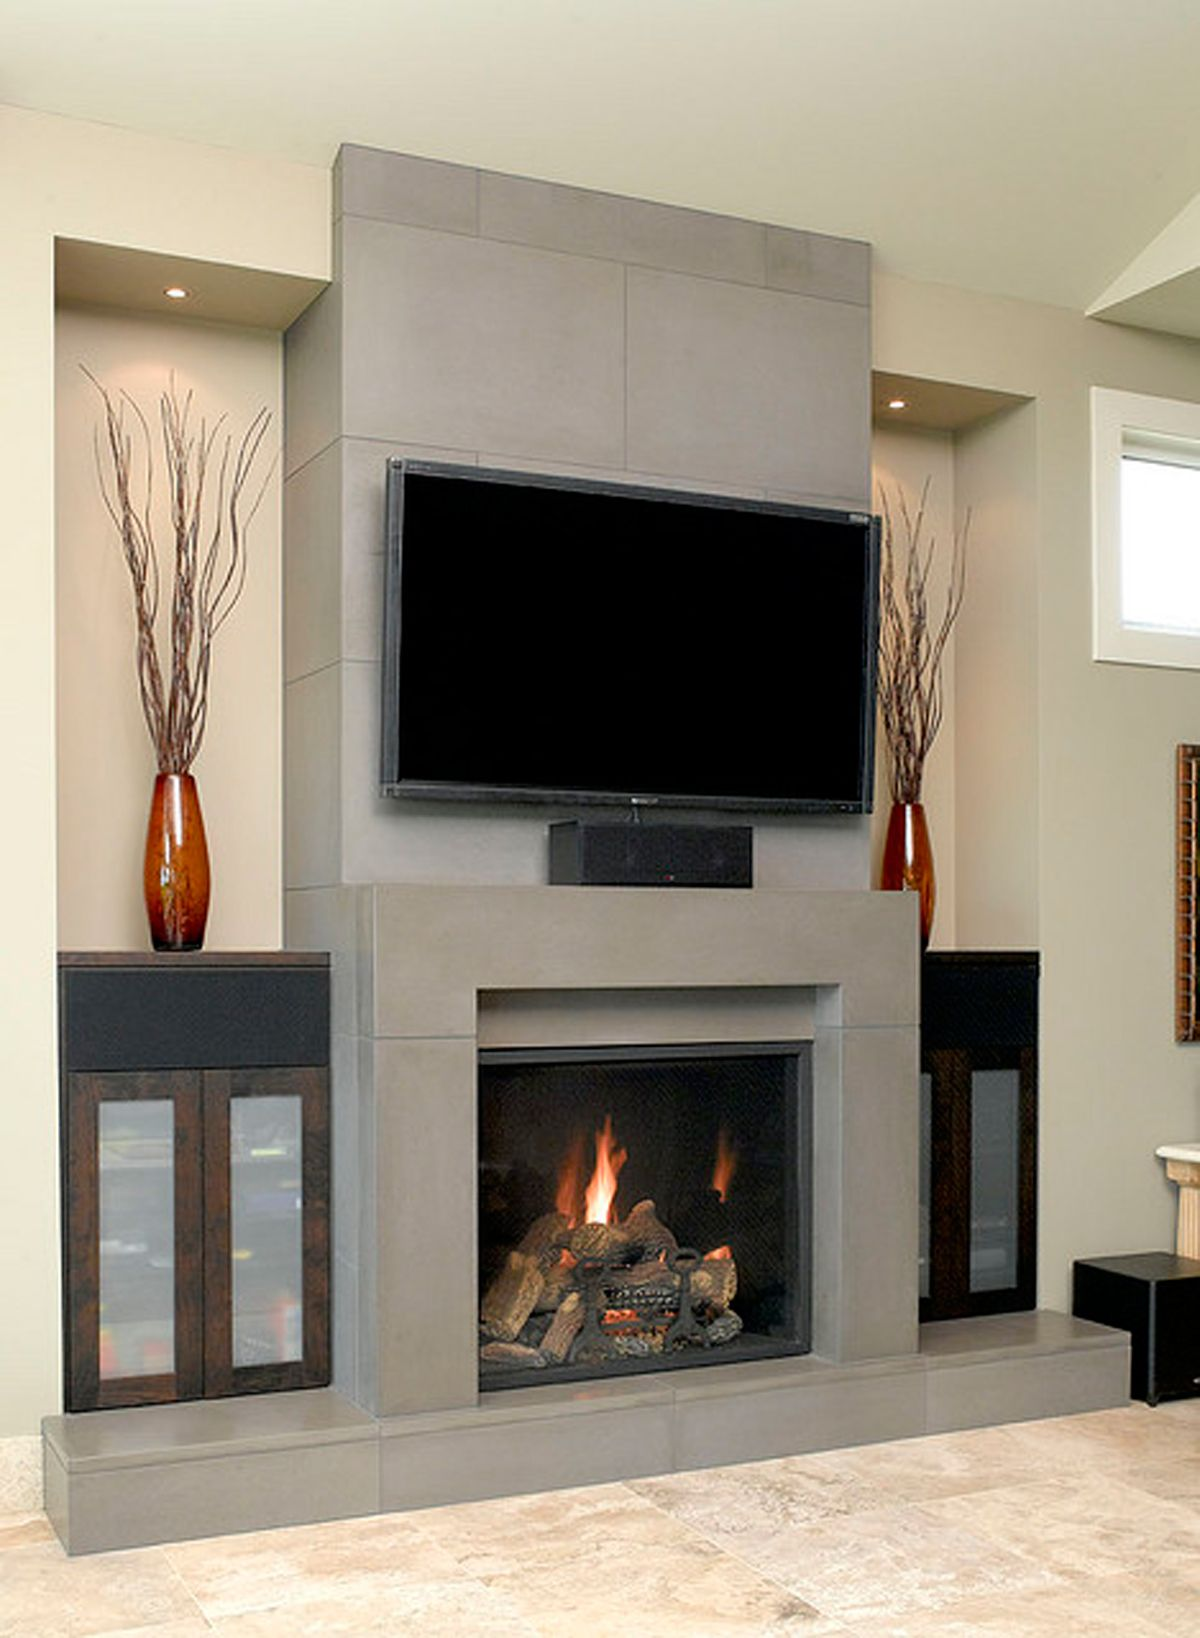 Grey Concrete Fireplace Designs For Awesome And Interesting Design To Make Warm The Room